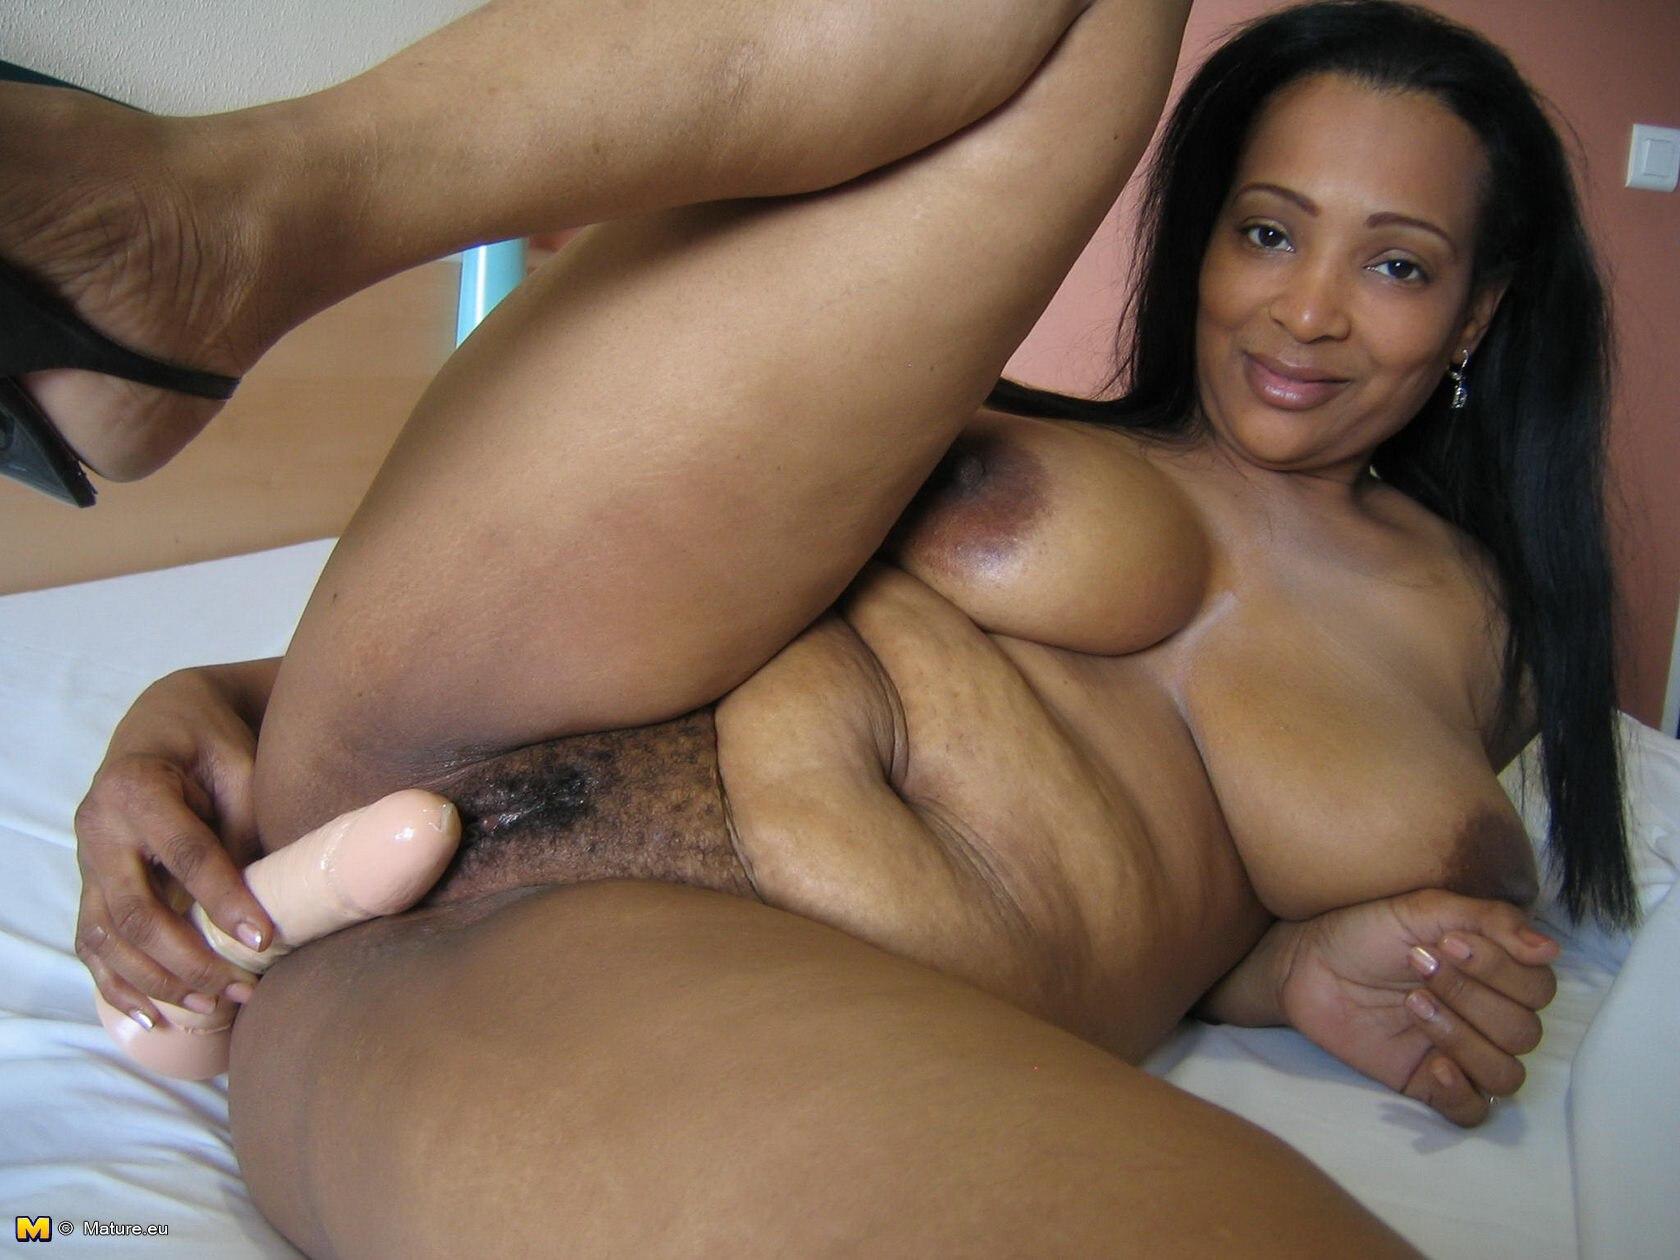 Think About Joining Ebony Grannies On Live Cam Sessions?